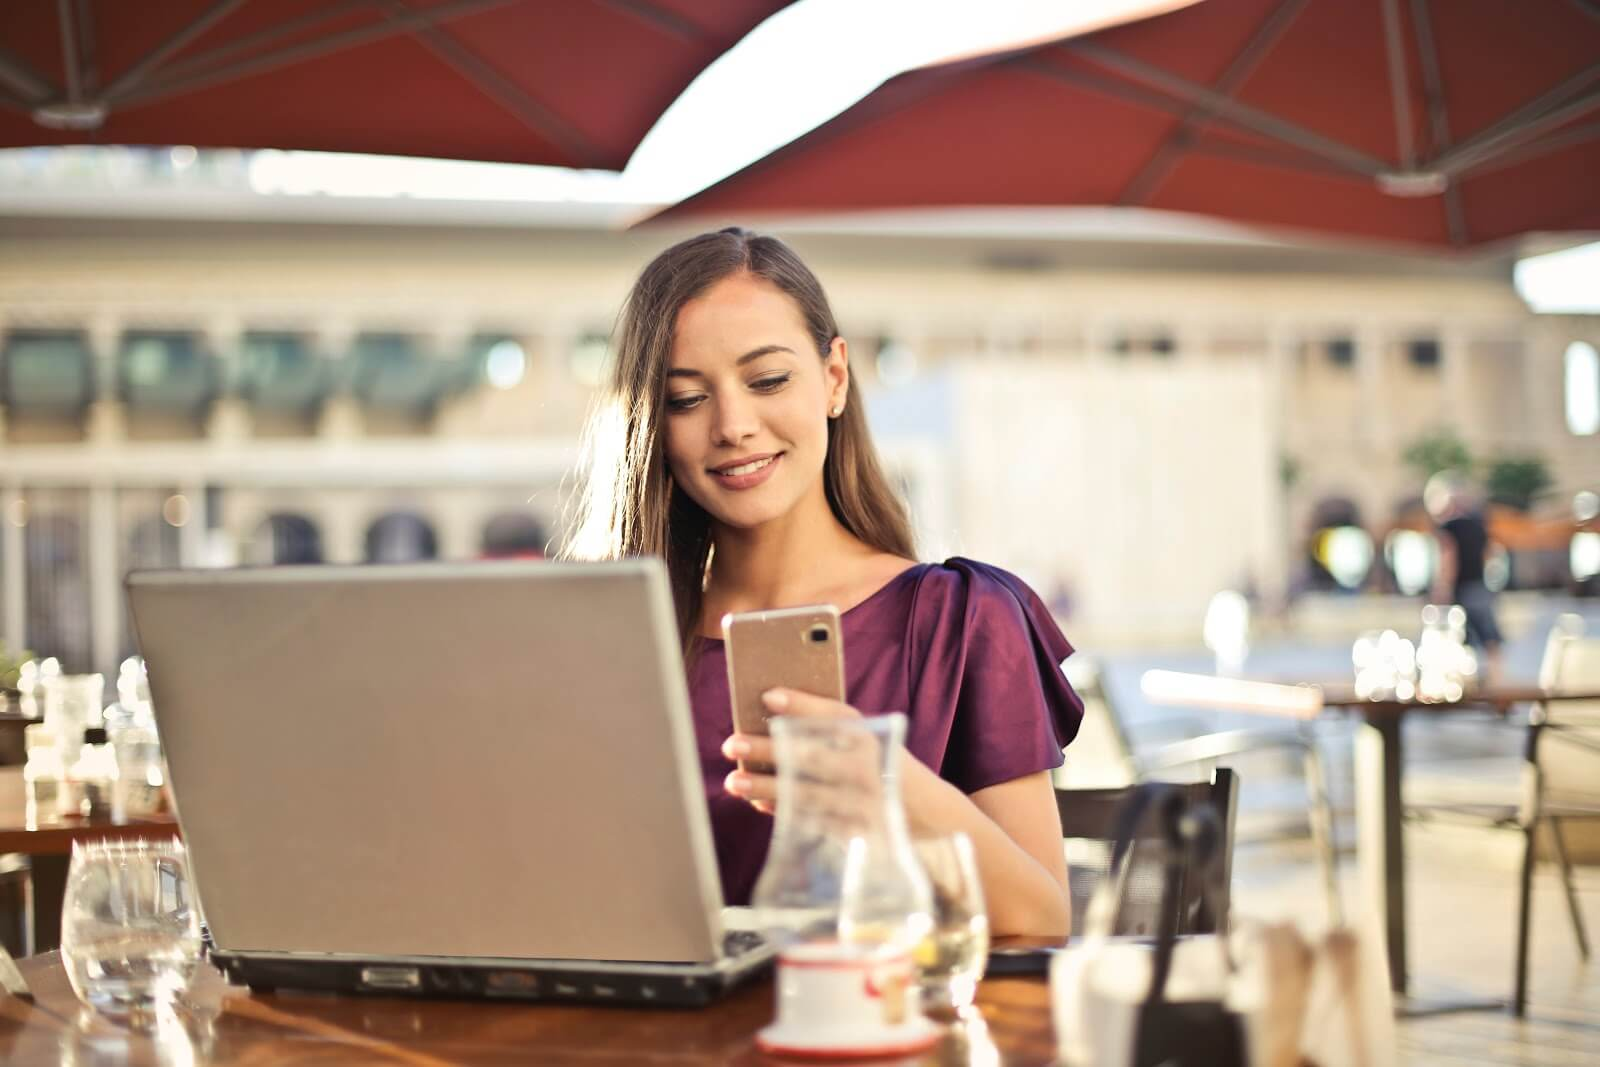 Using the best freelance websites will improve your chances of securing work